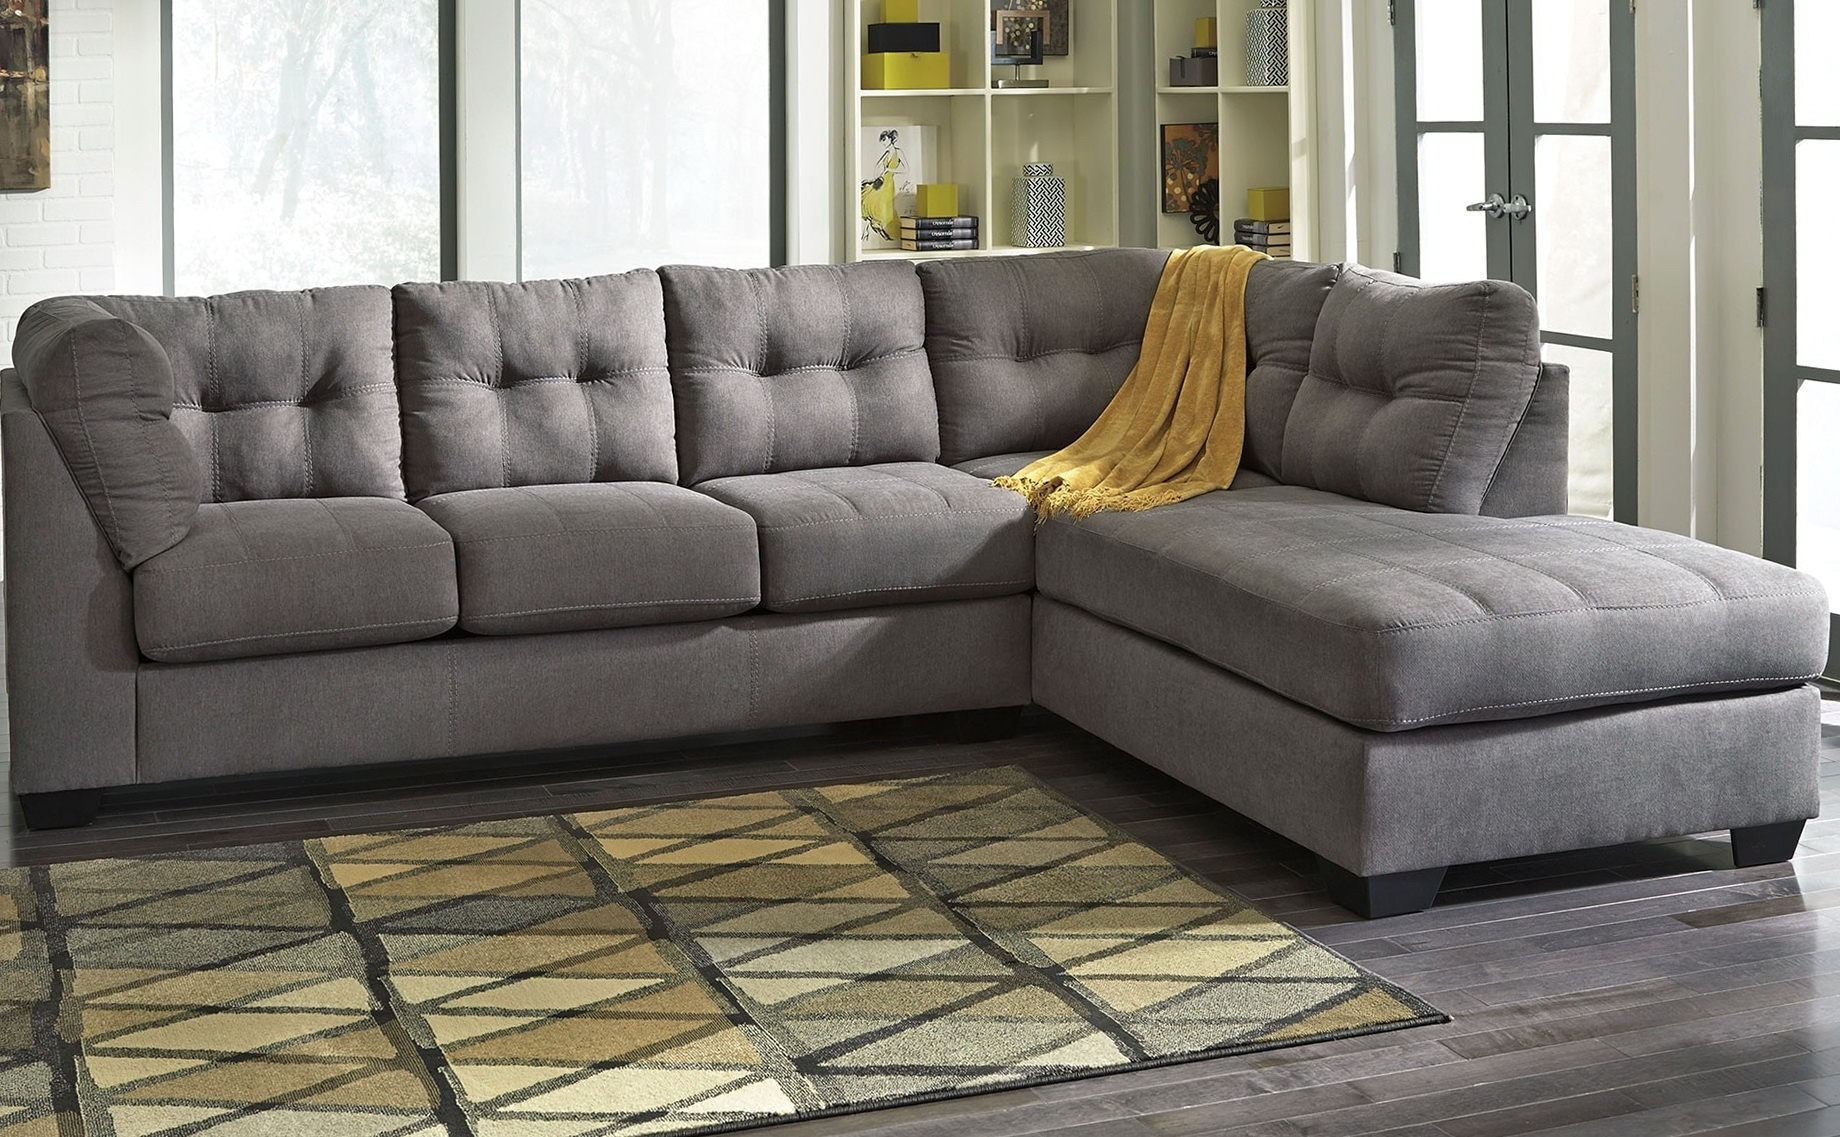 Perfect Grey Sectional Sofa With Chaise 31 For Your Modern Sofa For Delano 2 Piece Sectionals With Laf Oversized Chaise (View 15 of 30)